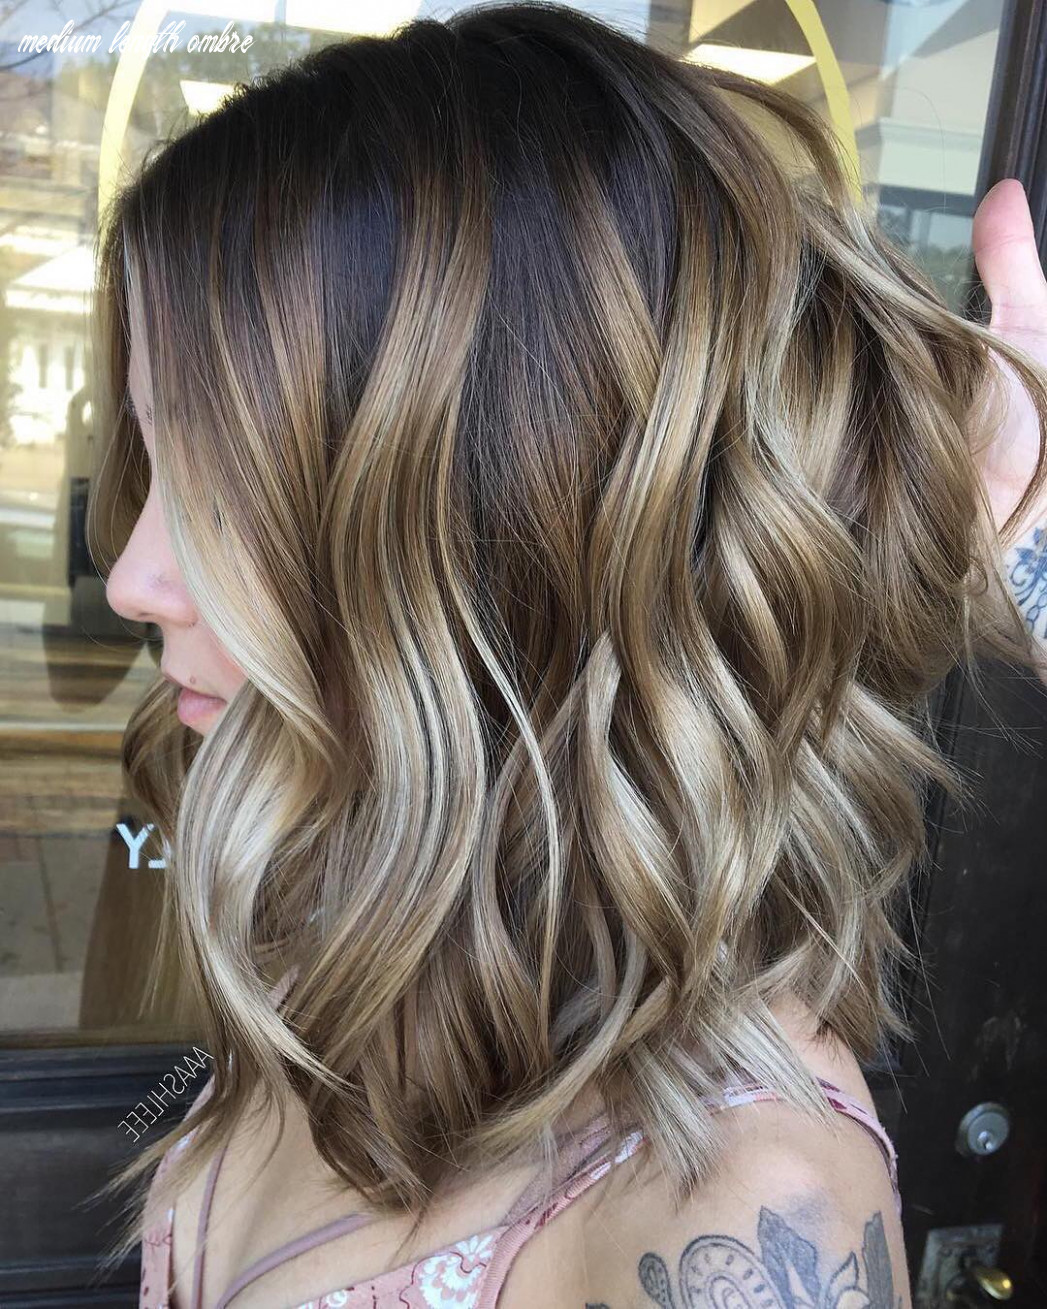 11 ombre balayage hairstyles for medium length hair, hair color 11 medium length ombre